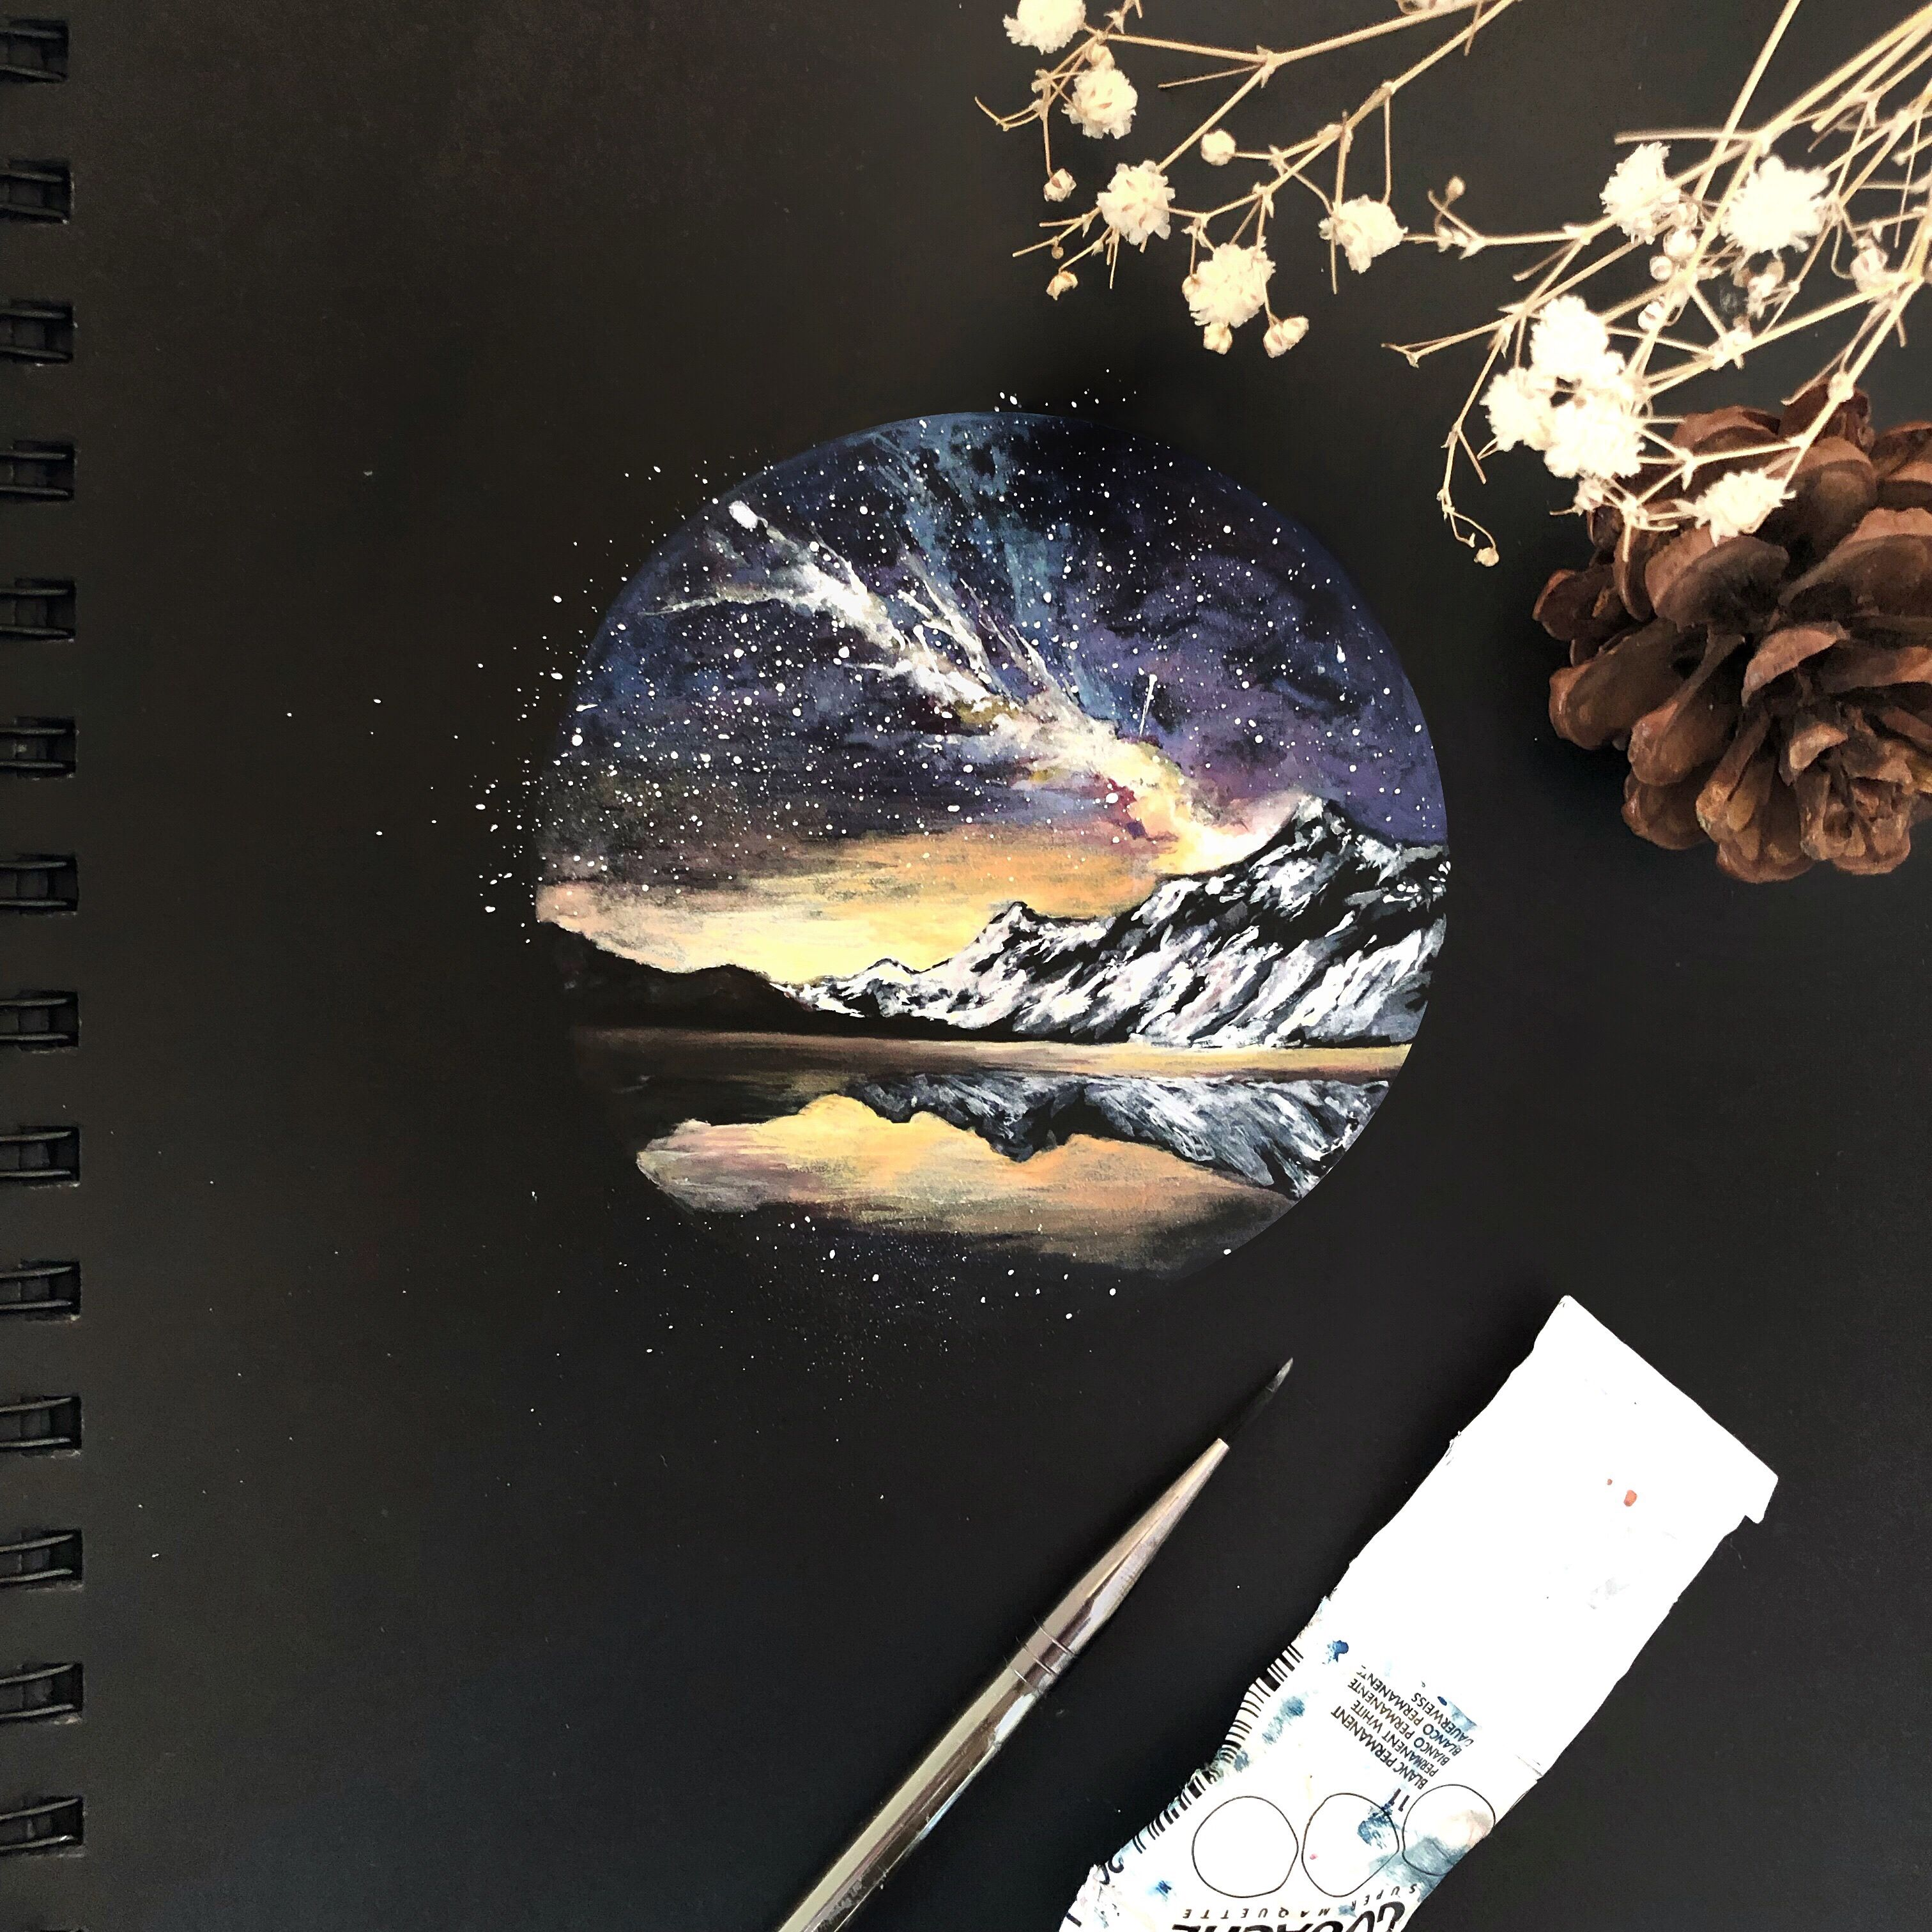 Watercolor And Gouache Landscape Painting On Black Paper